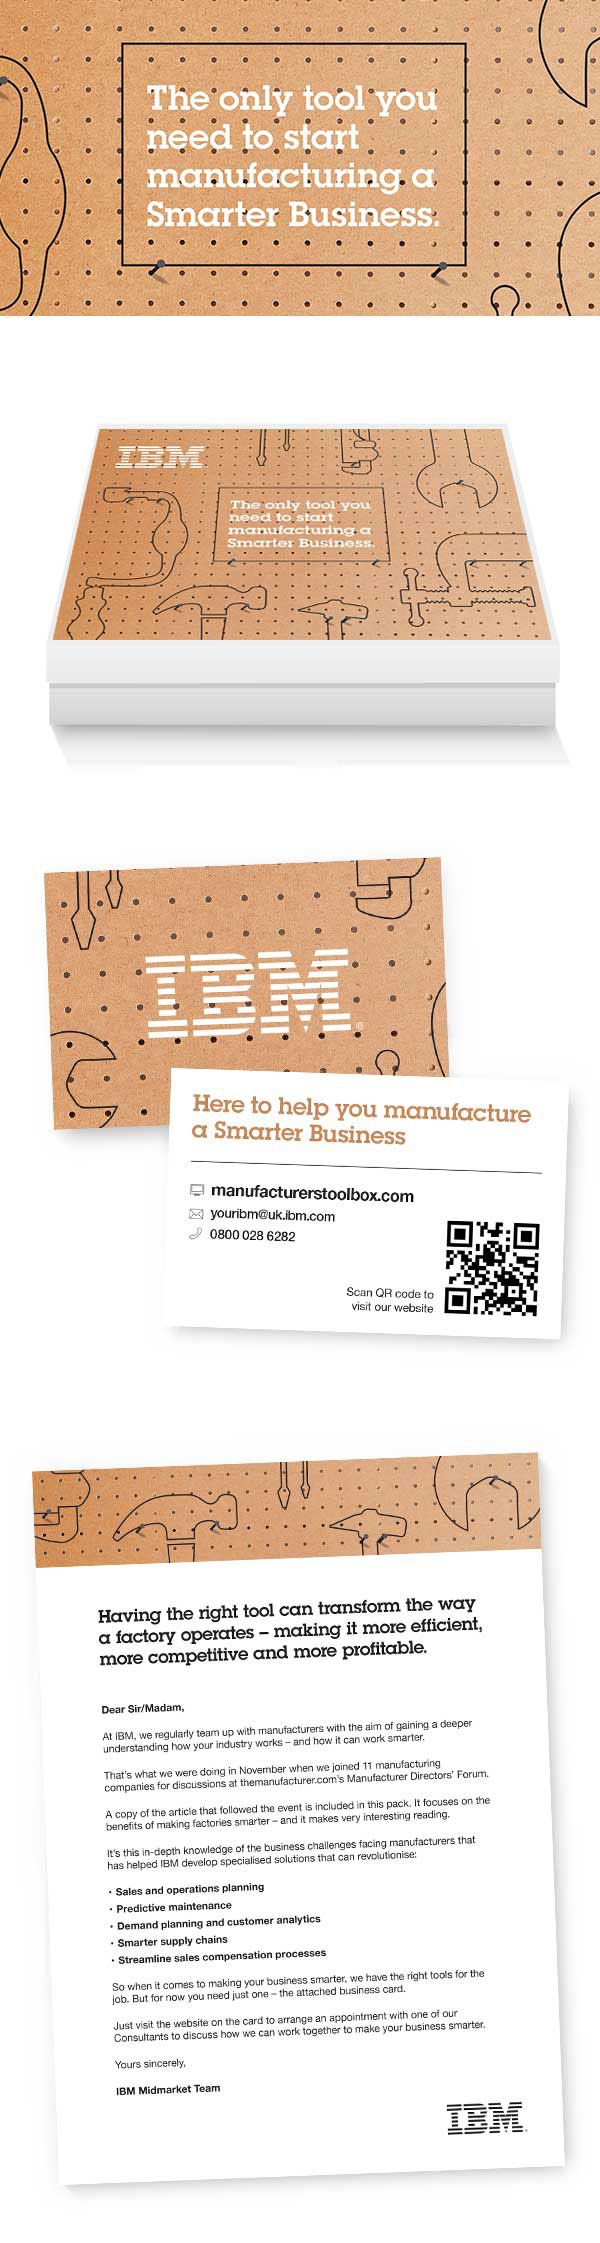 IBM Direct Marketing by Emily McMurrin, via Behance